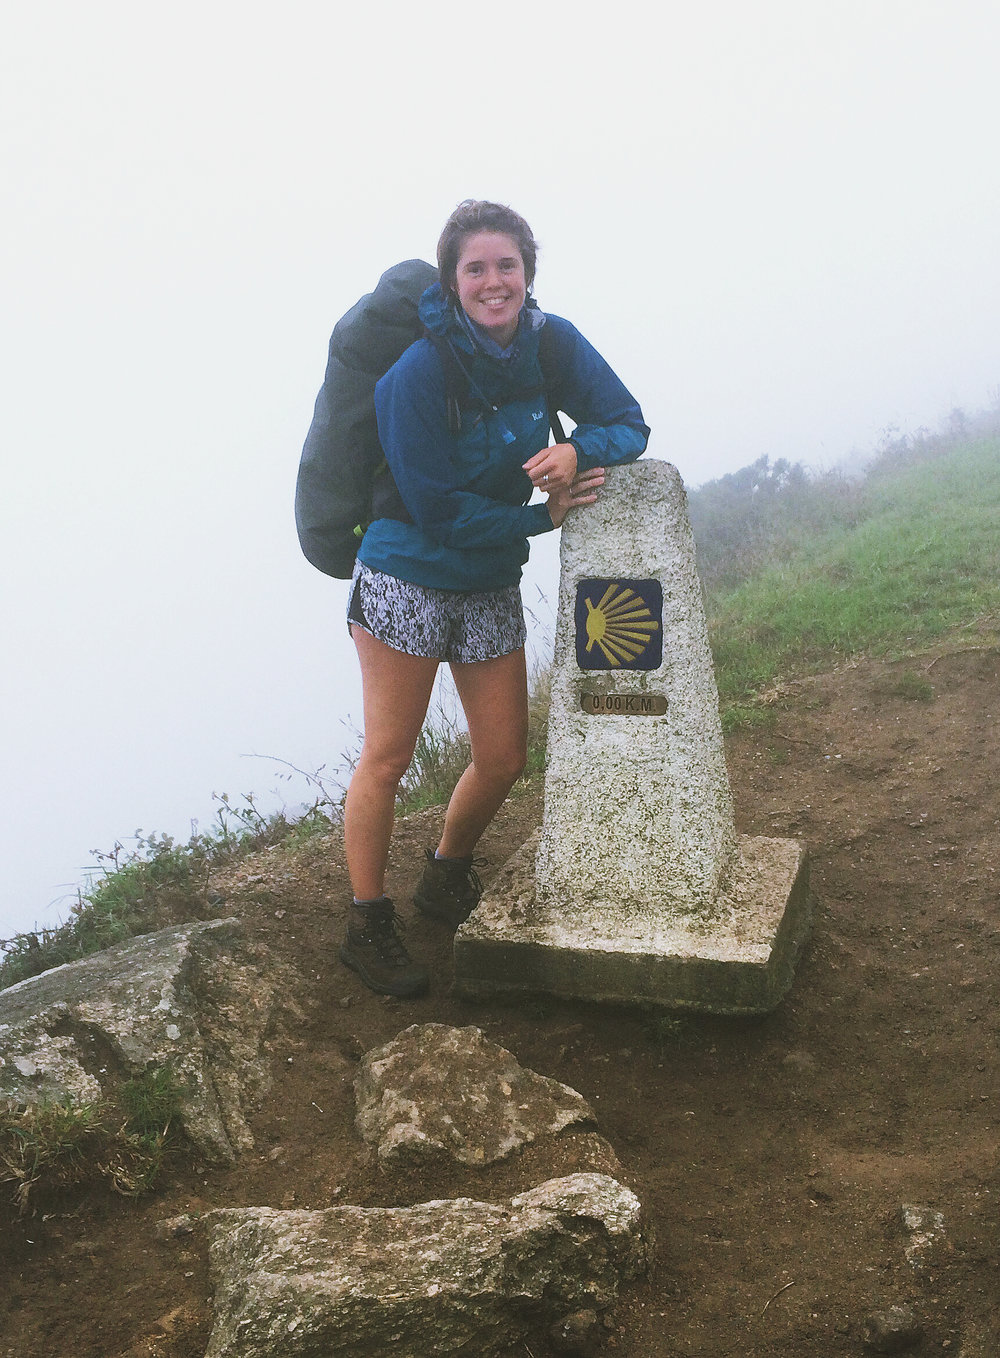 0.0km: The final distance marker at Finisterre, the end of the world.